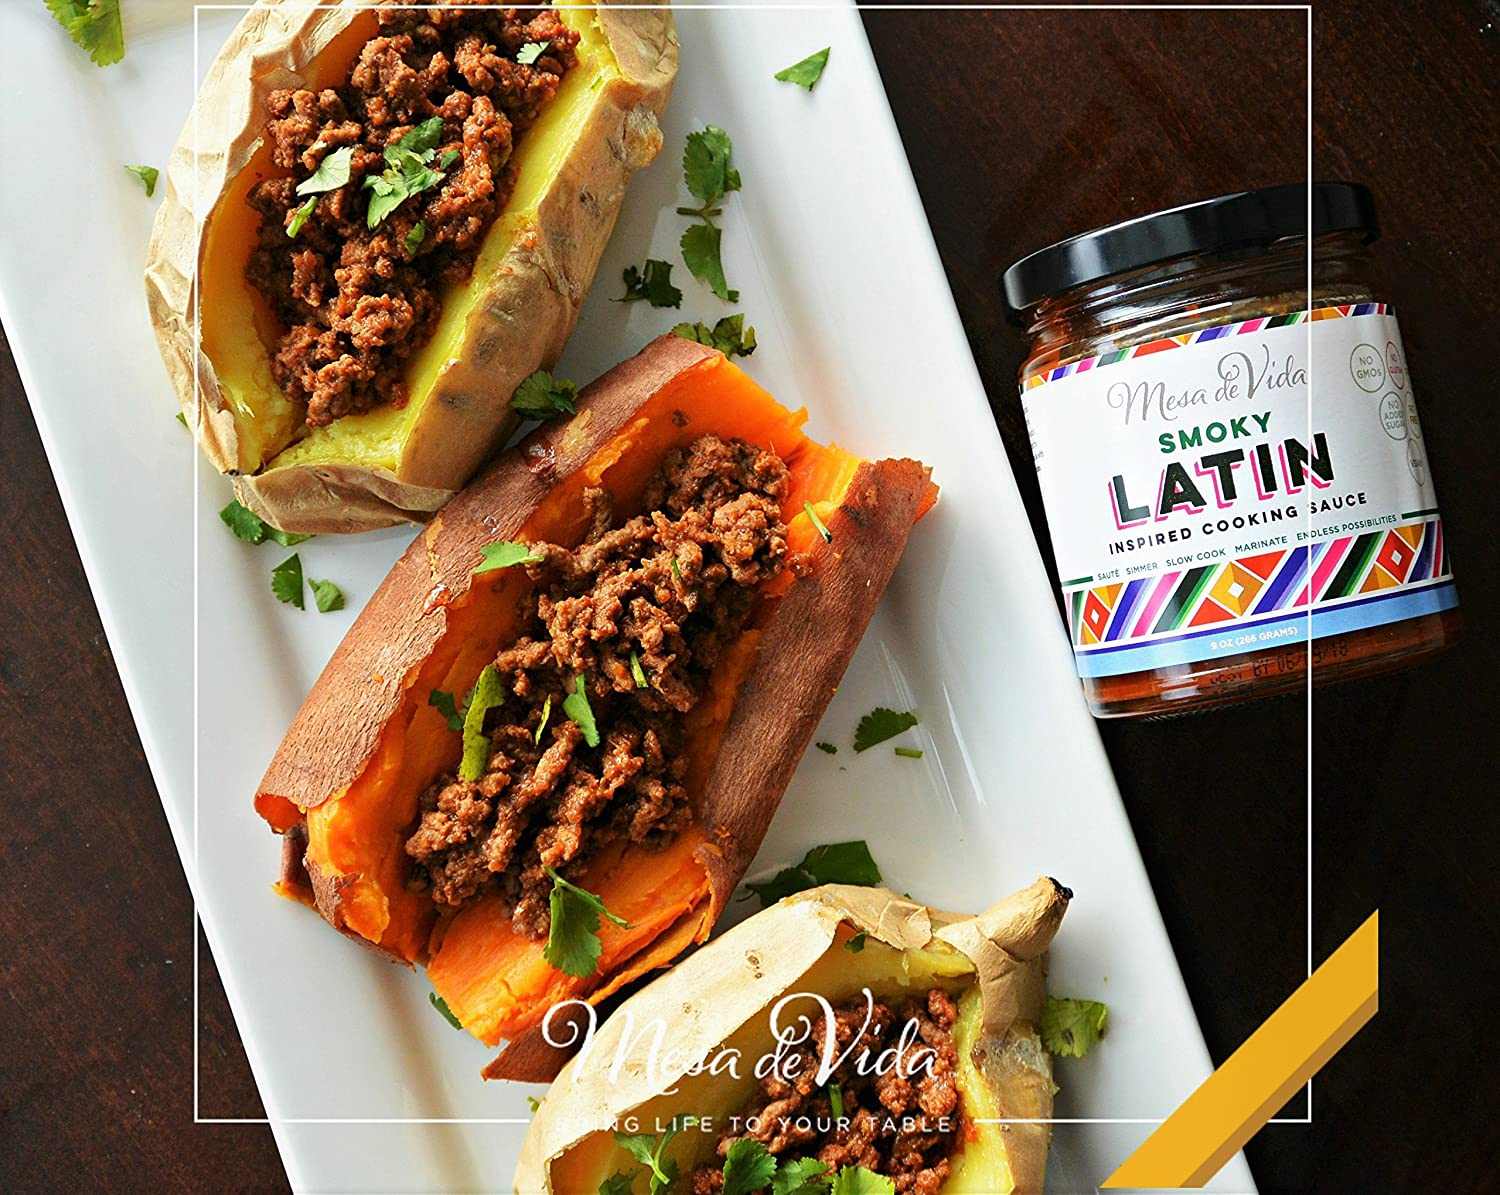 Amazon.com : Smoky Latin Healthy Cooking Sauce 3 Pack - Whole30 Approved   Vegan   Paleo   Heart Healthy   Gourmet : Grocery & Gourmet Food